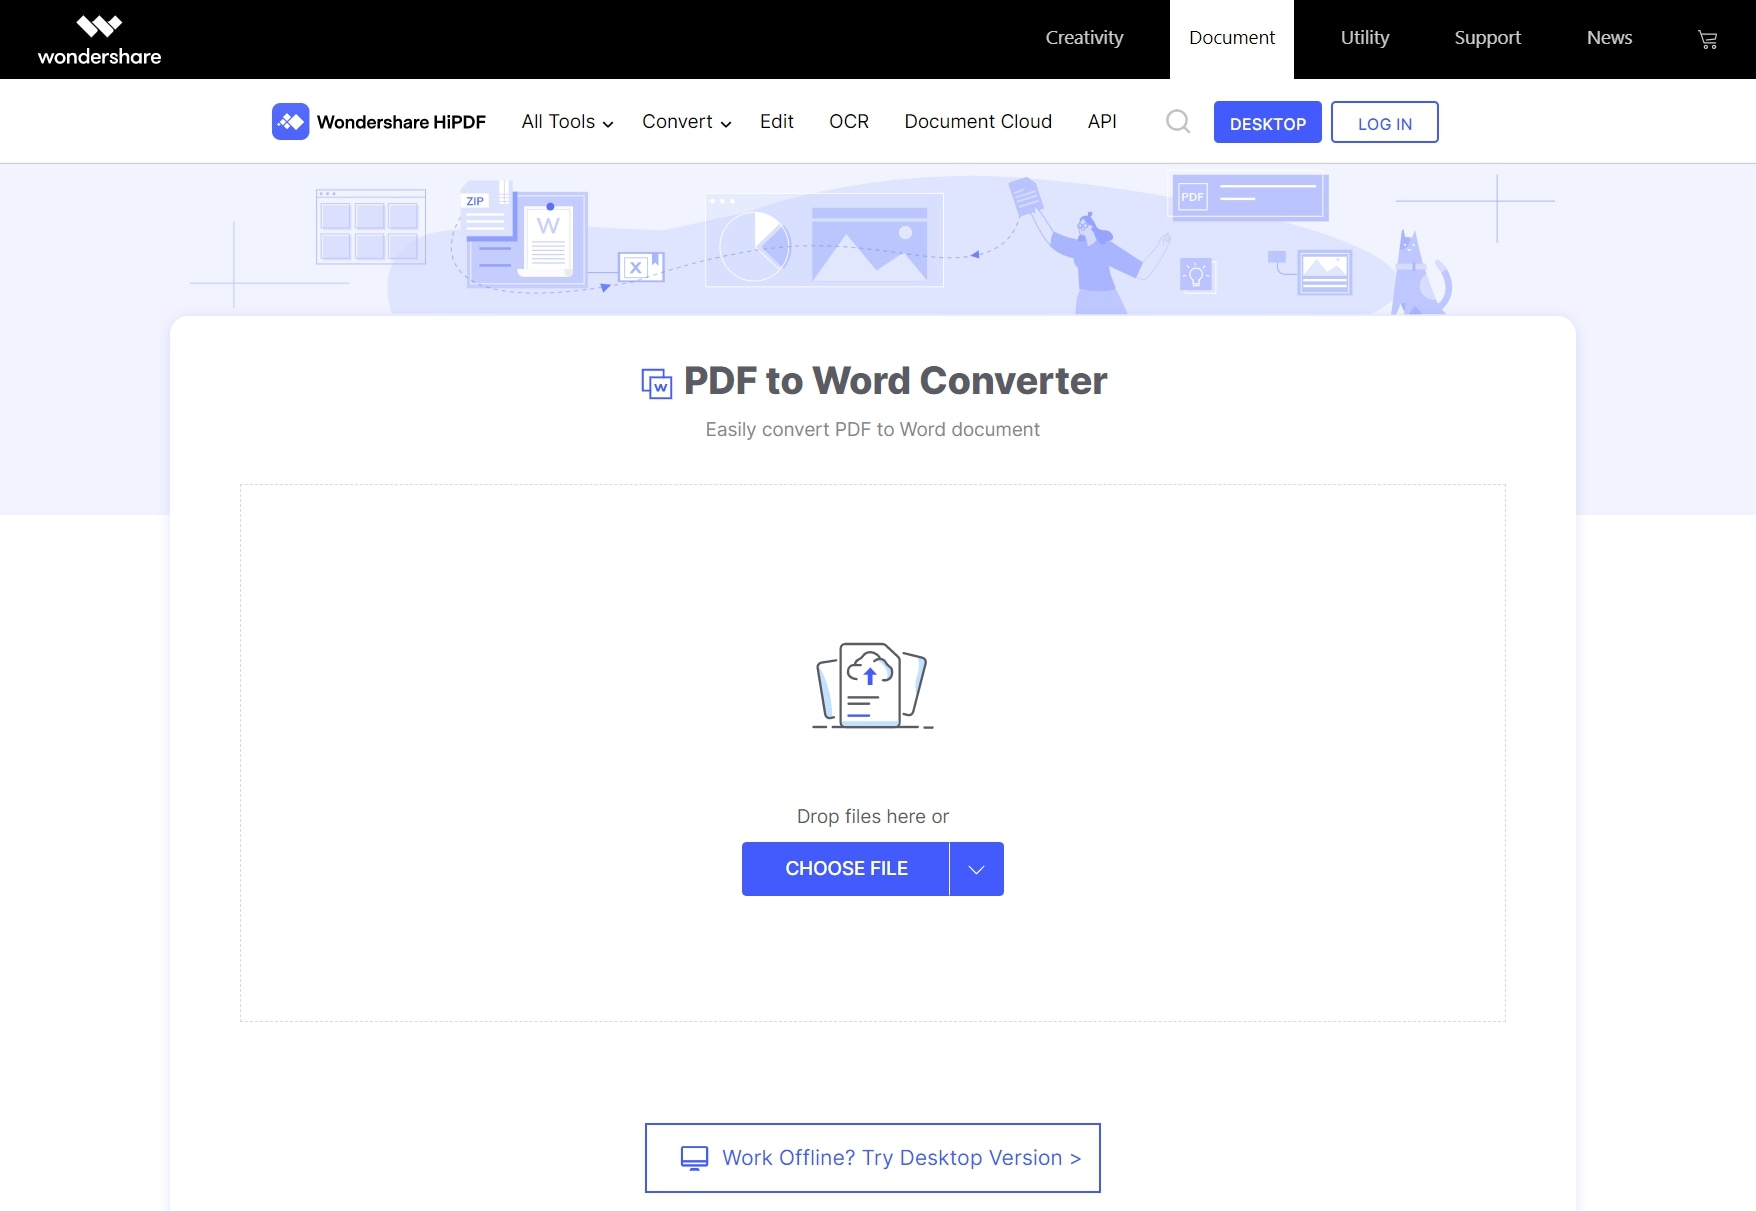 esportare pdf in word online